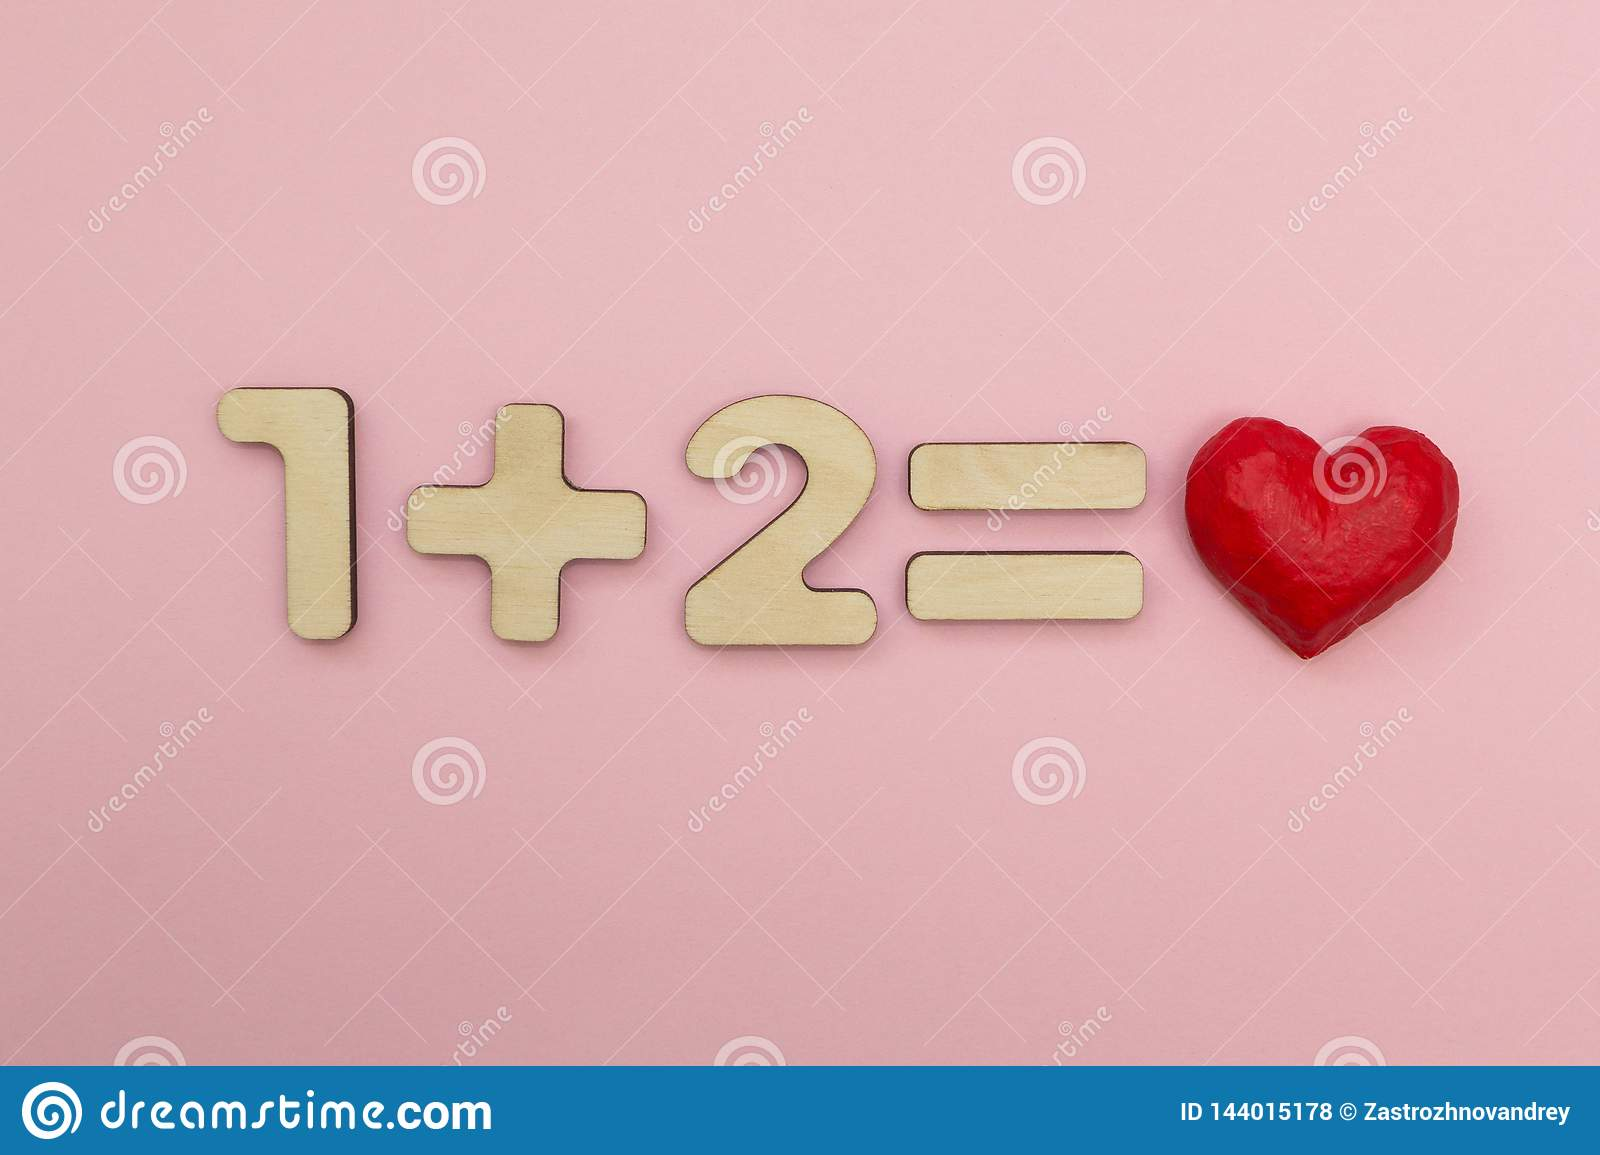 The Mathematics of Love. One plus two equals the heart